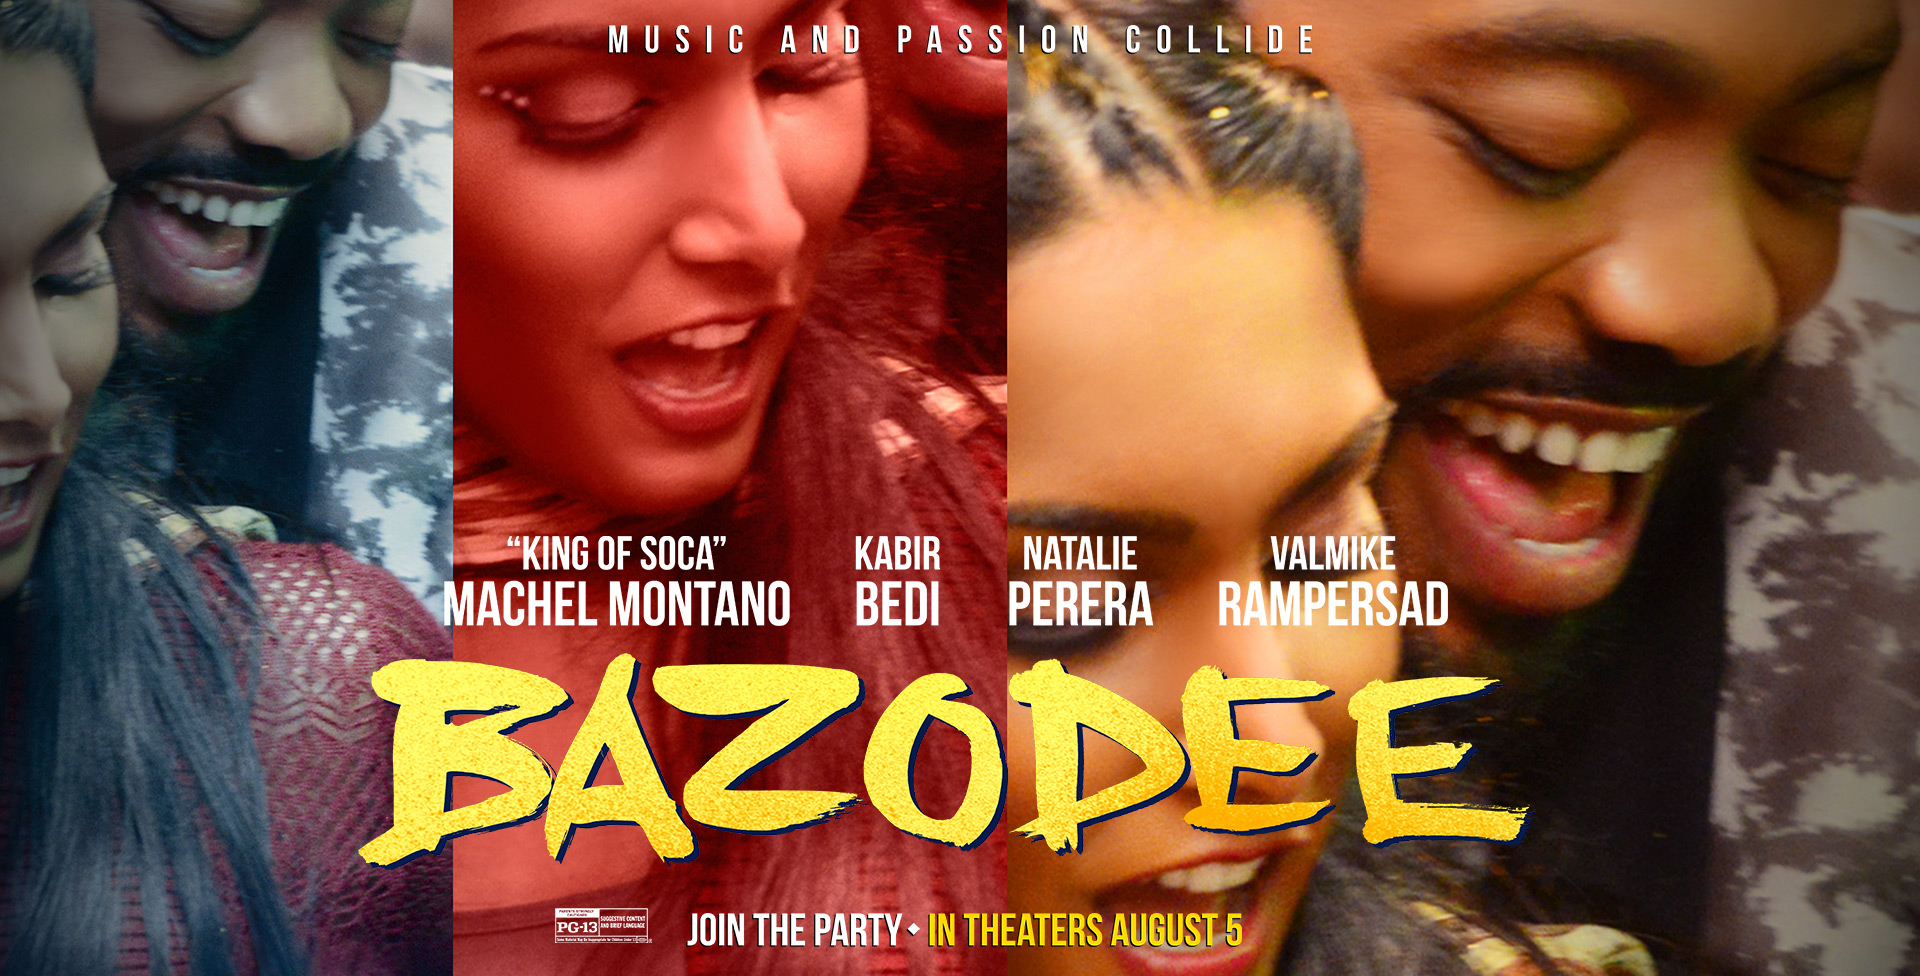 theaters bazodee the movie splashbg5